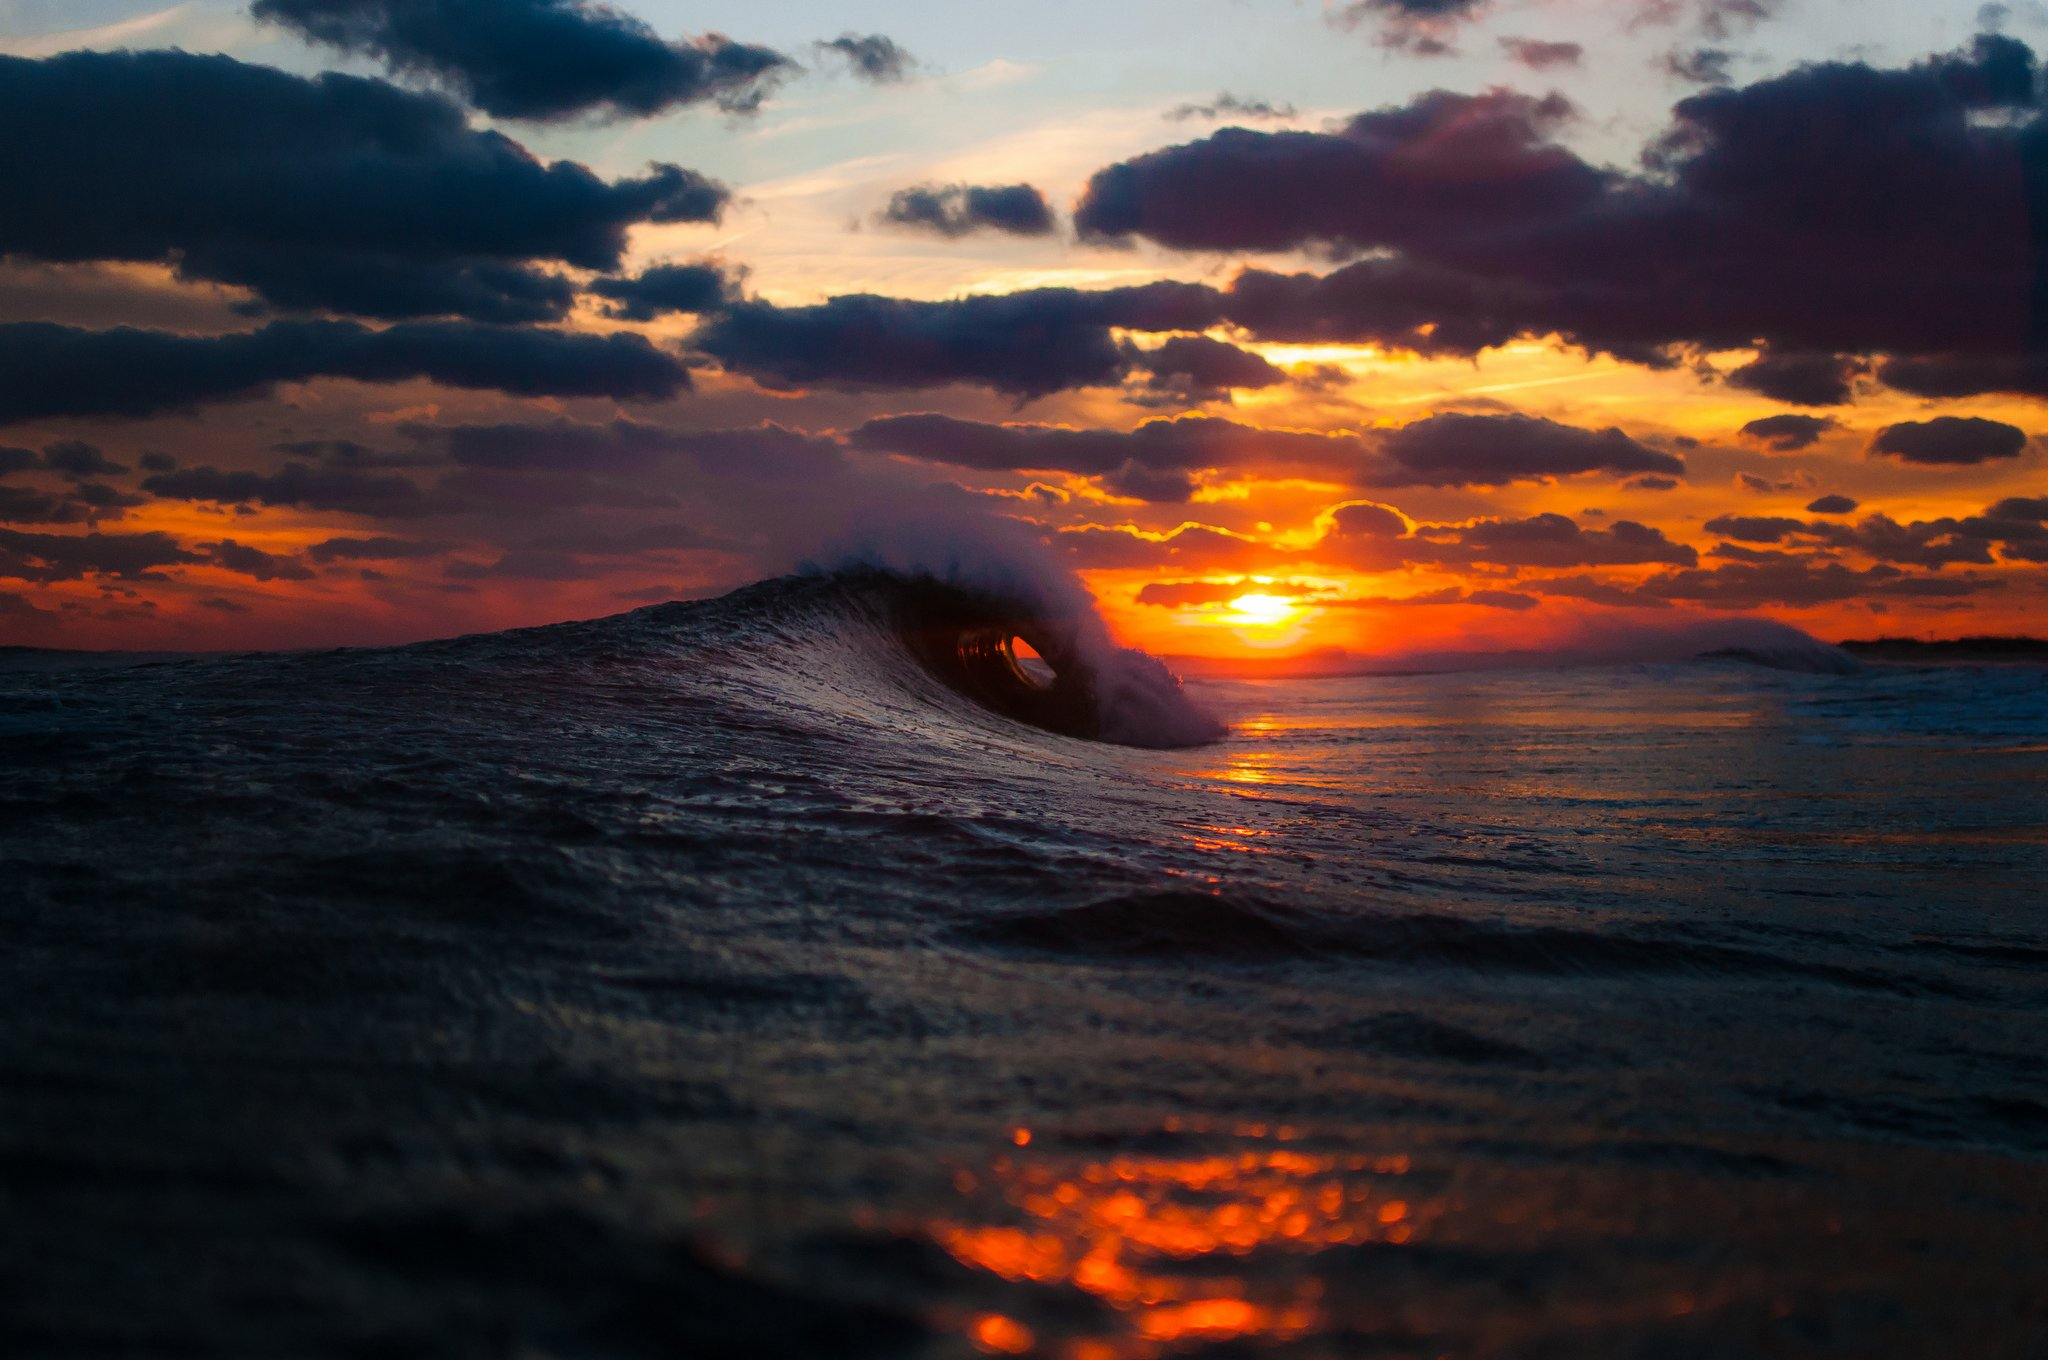 sunset themes ocean waves sunset themes ocean waves sunset photos 2048x1360